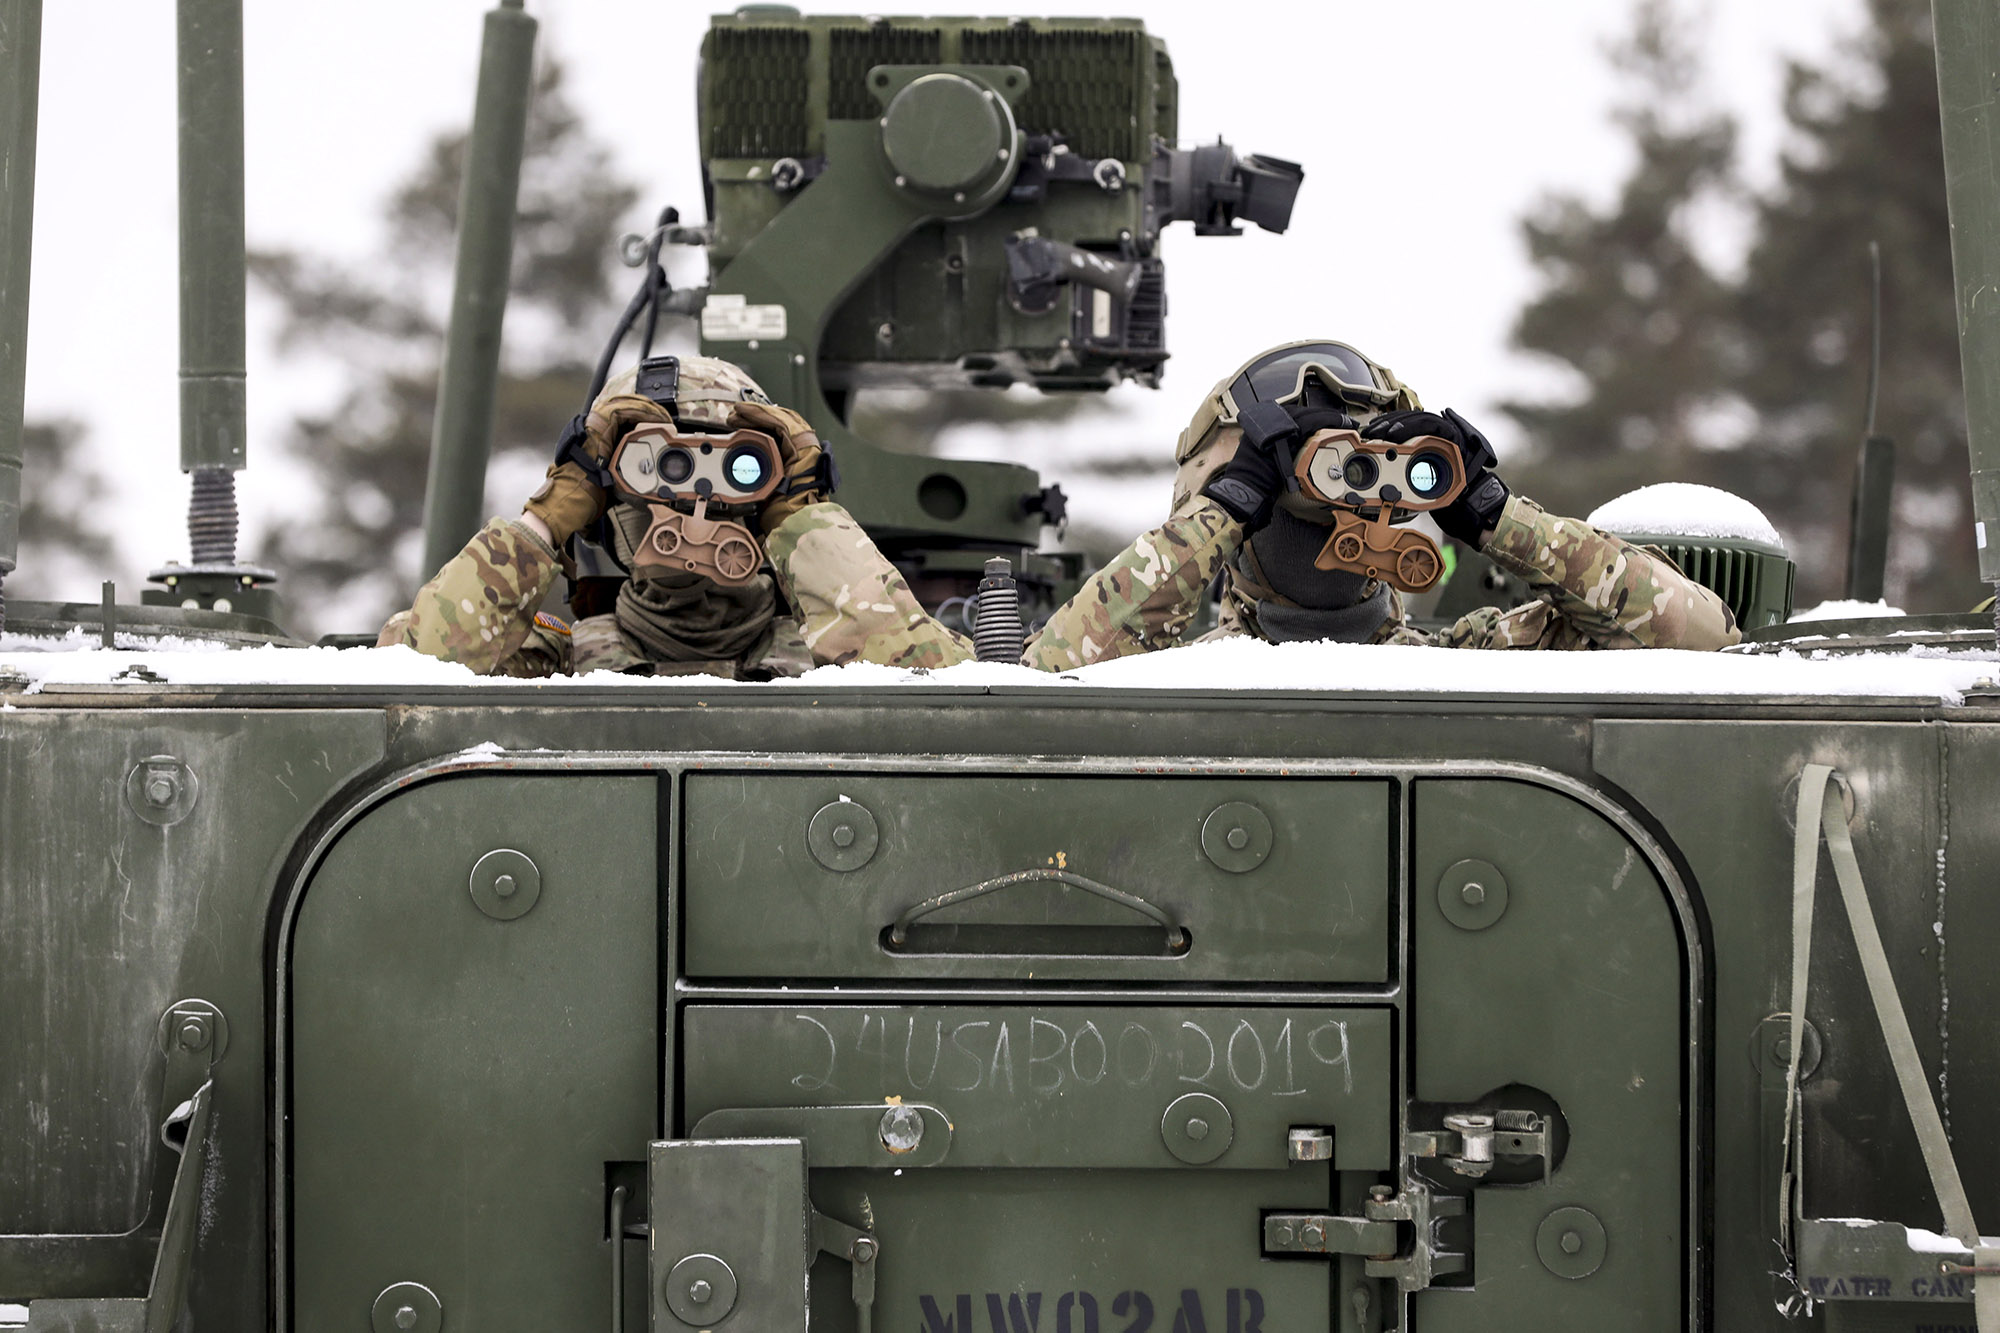 Soldiers from 1st Squadron, 2d Cavalry Regiment, enhanced Forward Presence Battle Group Poland, keep watch on targets during a joint combat live fire of the Gepard Air Defense System Feb. 2, 2021, at Bemowo Piskie Training Area, Poland. (Staff Sgt. Elizabeth O. Bryson/Army)